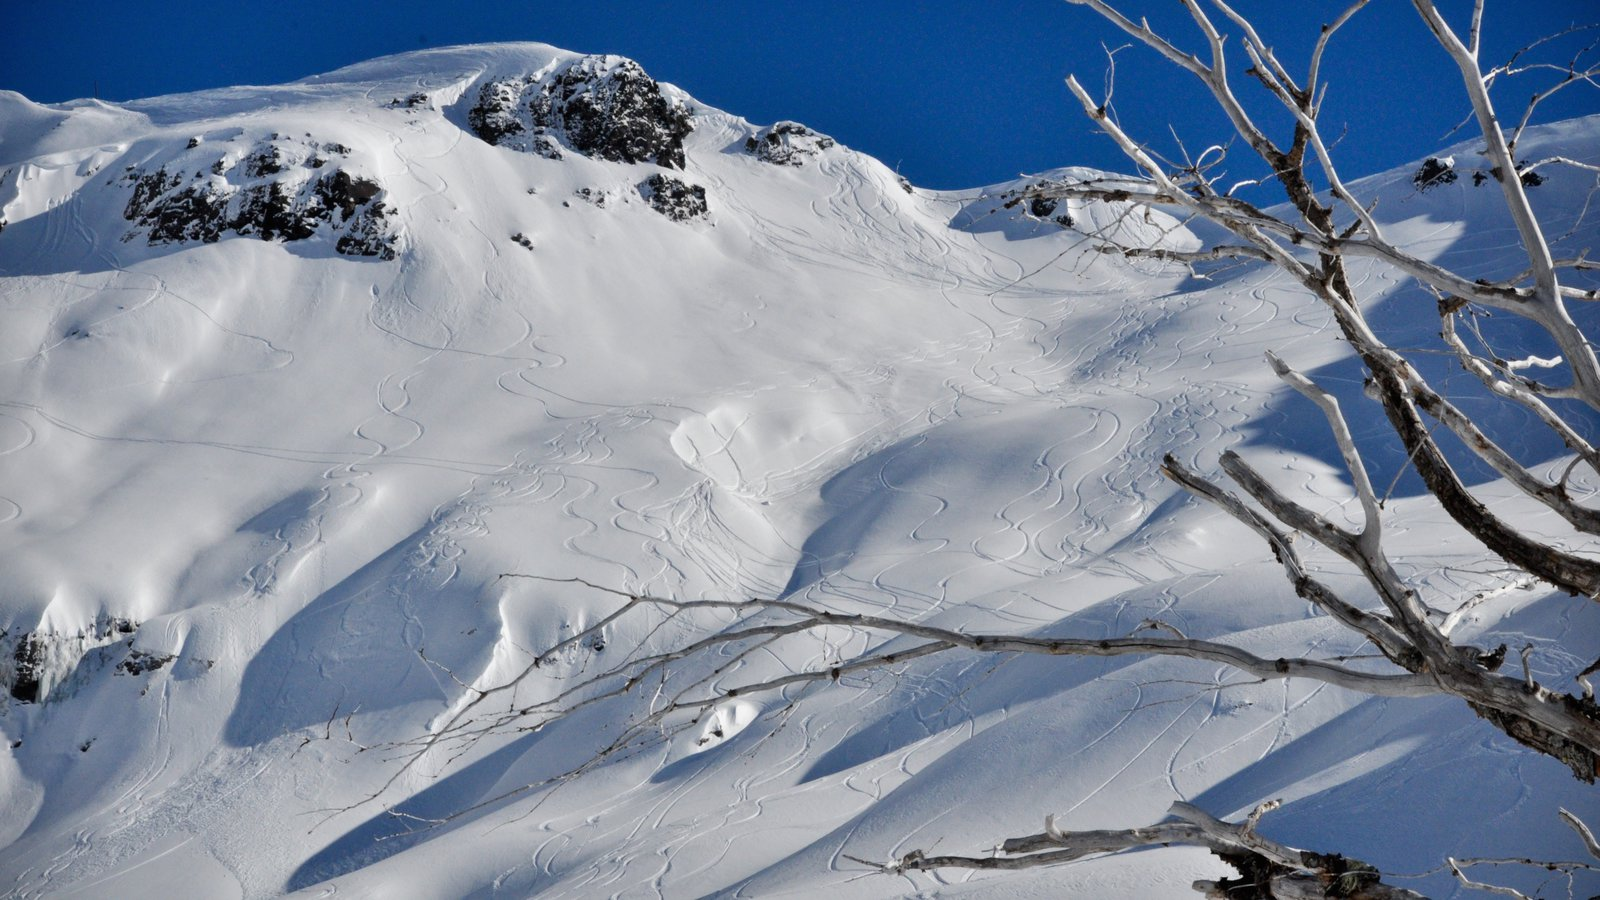 winter pictures: view images of chapelco ski resort